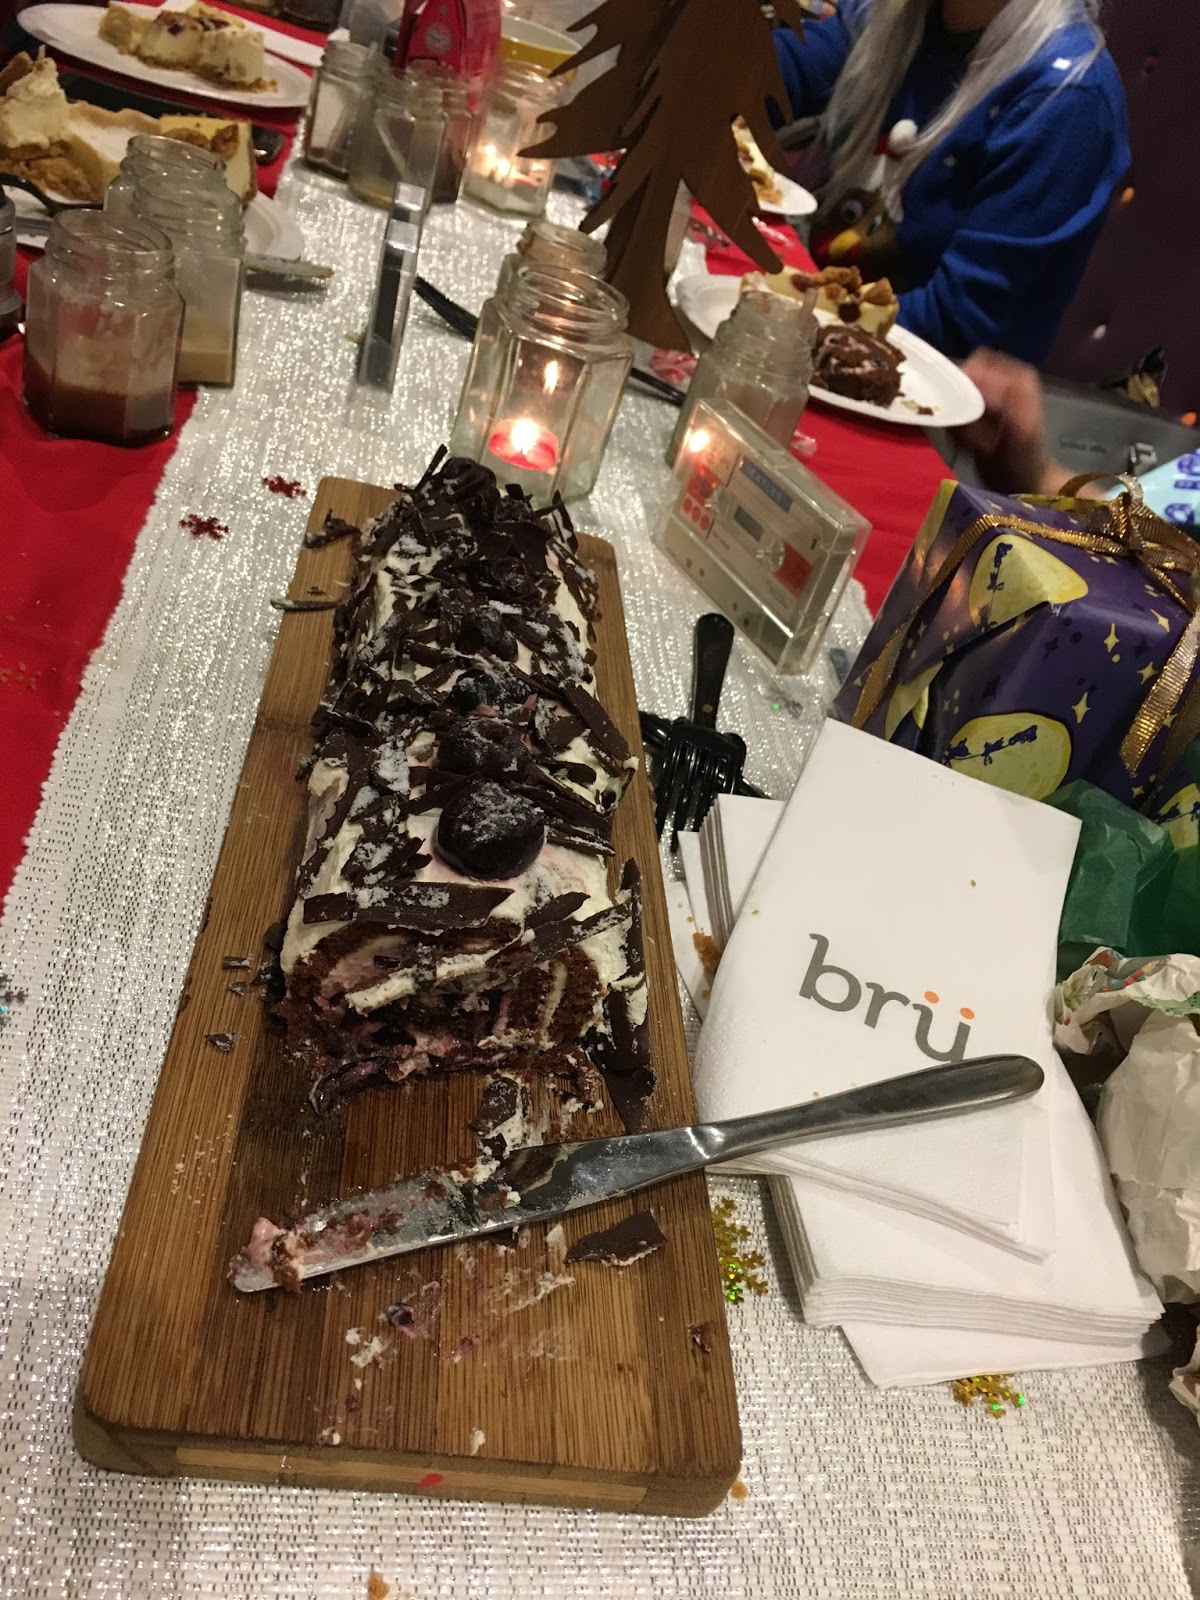 Bru Leicester review festive menu cake coffee